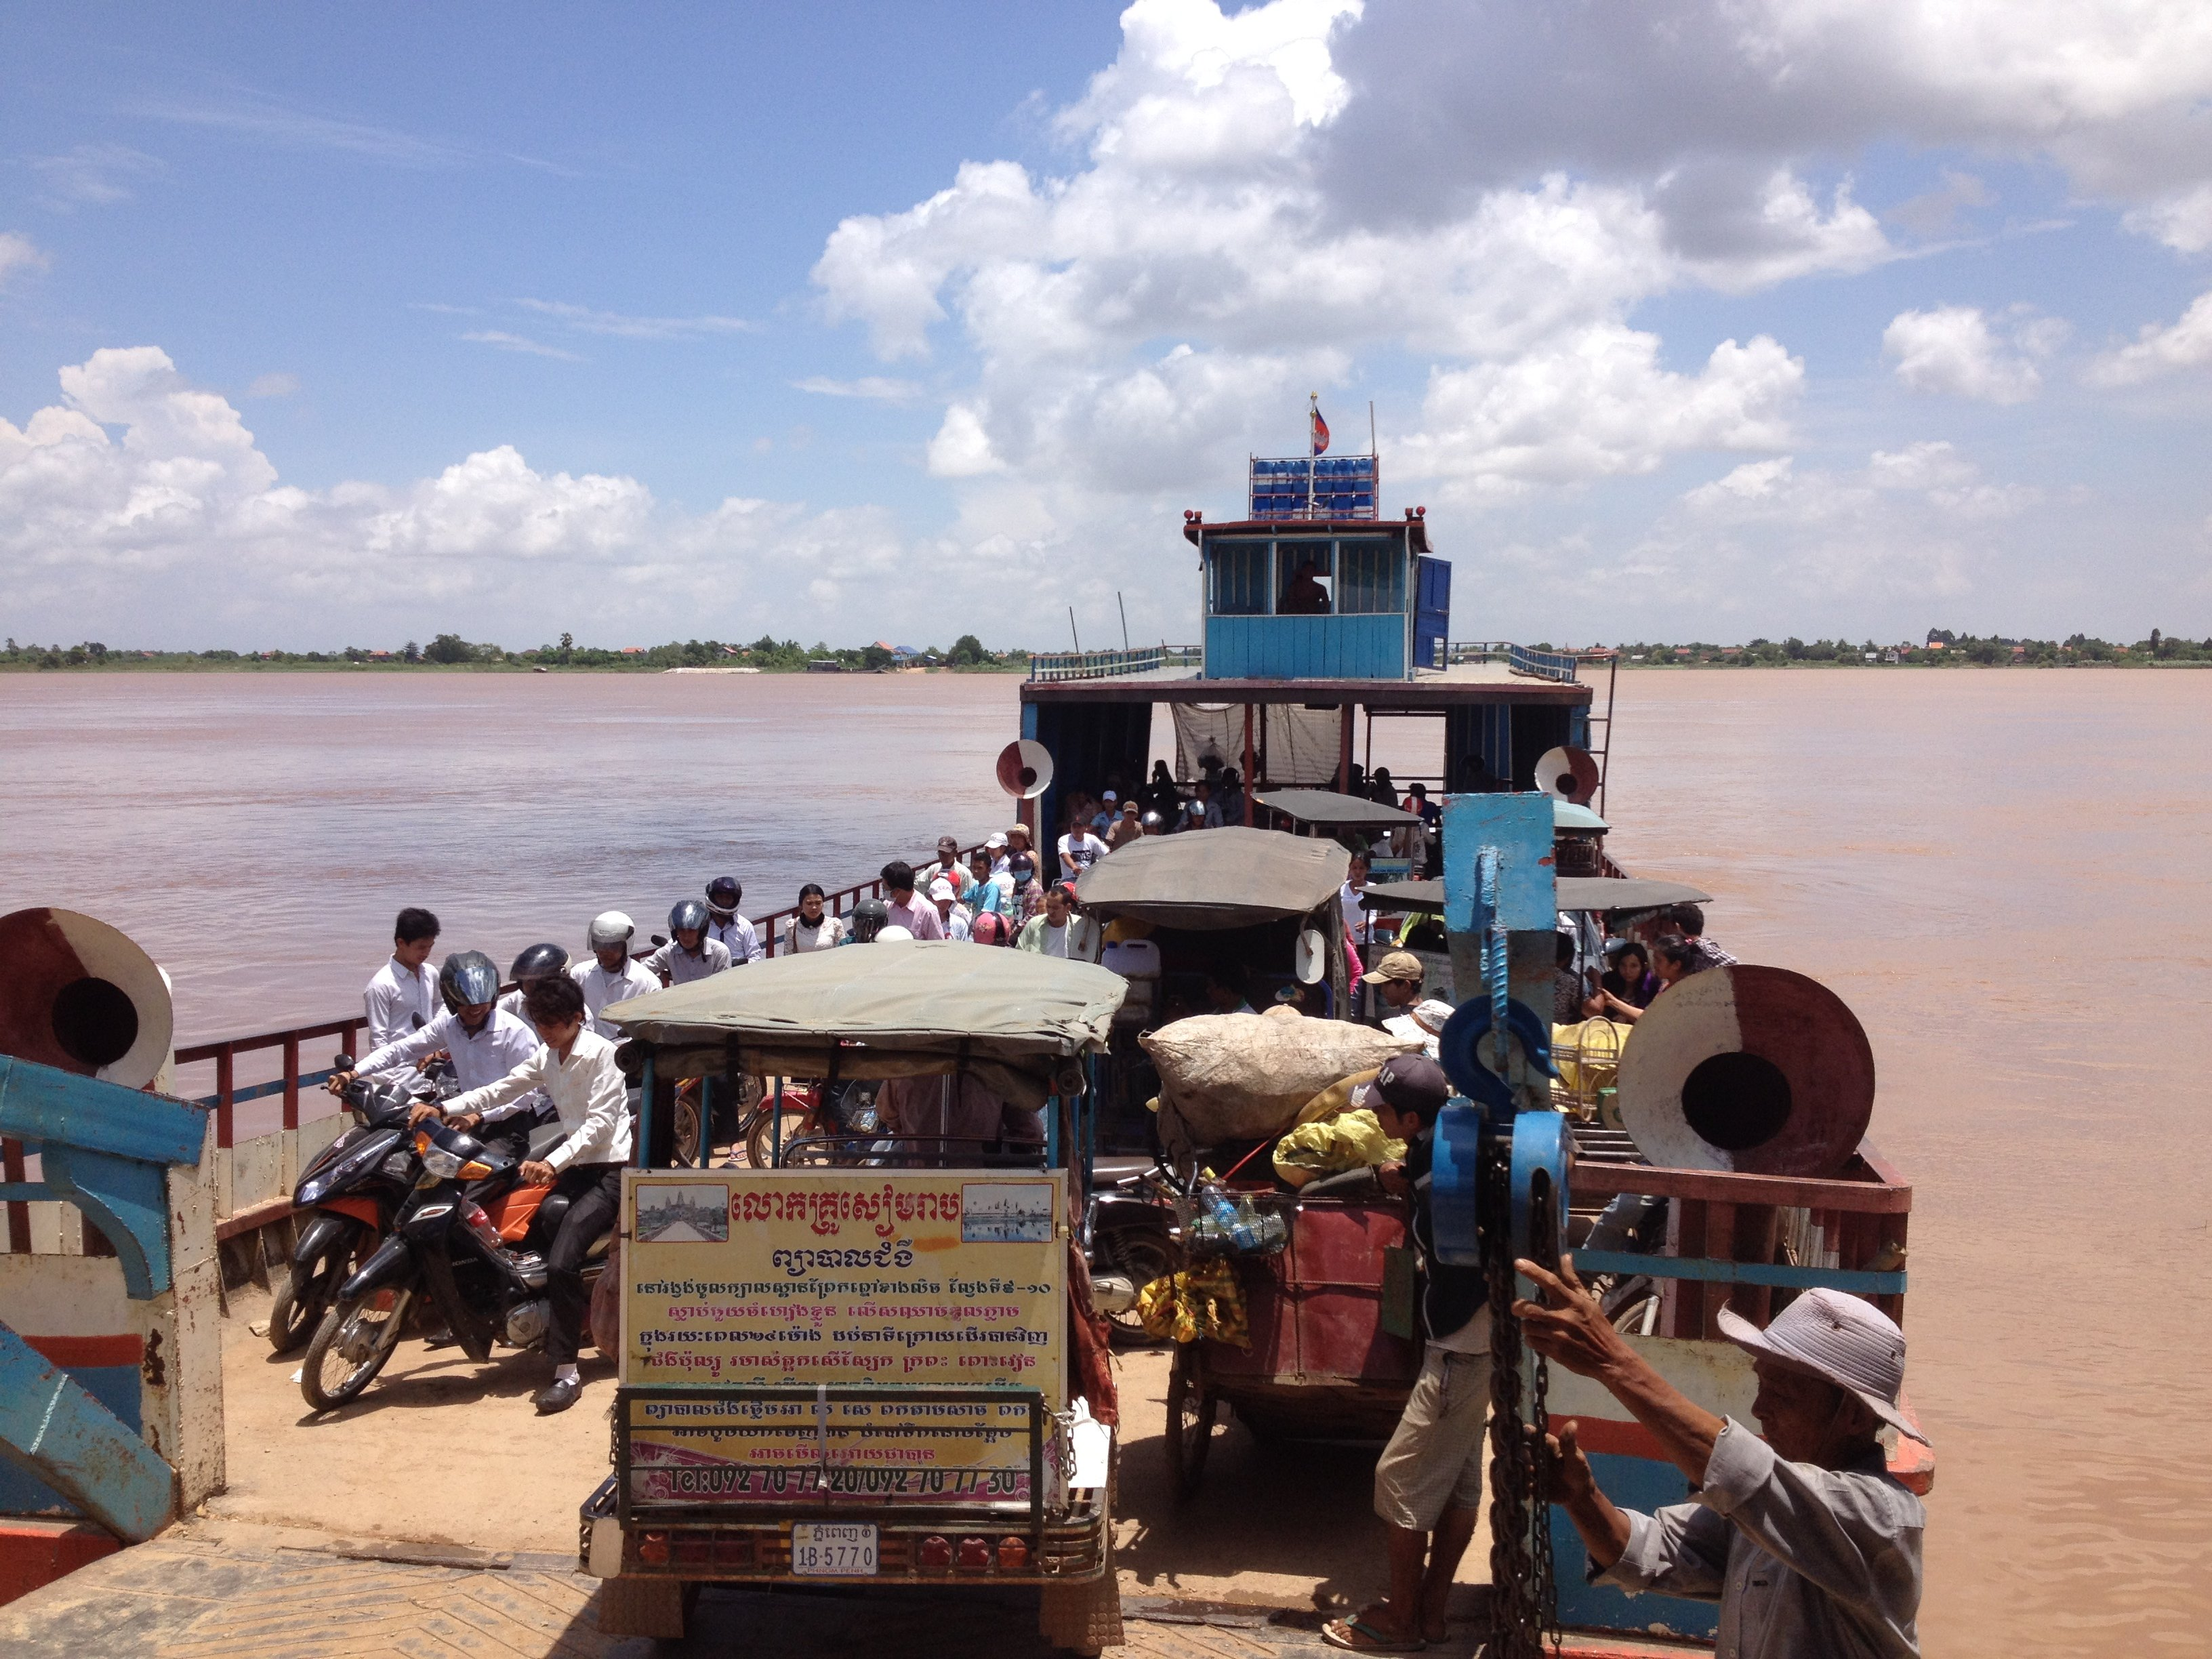 Tuk Tuks and other vehicles riding a ferry to cross the Mekong River